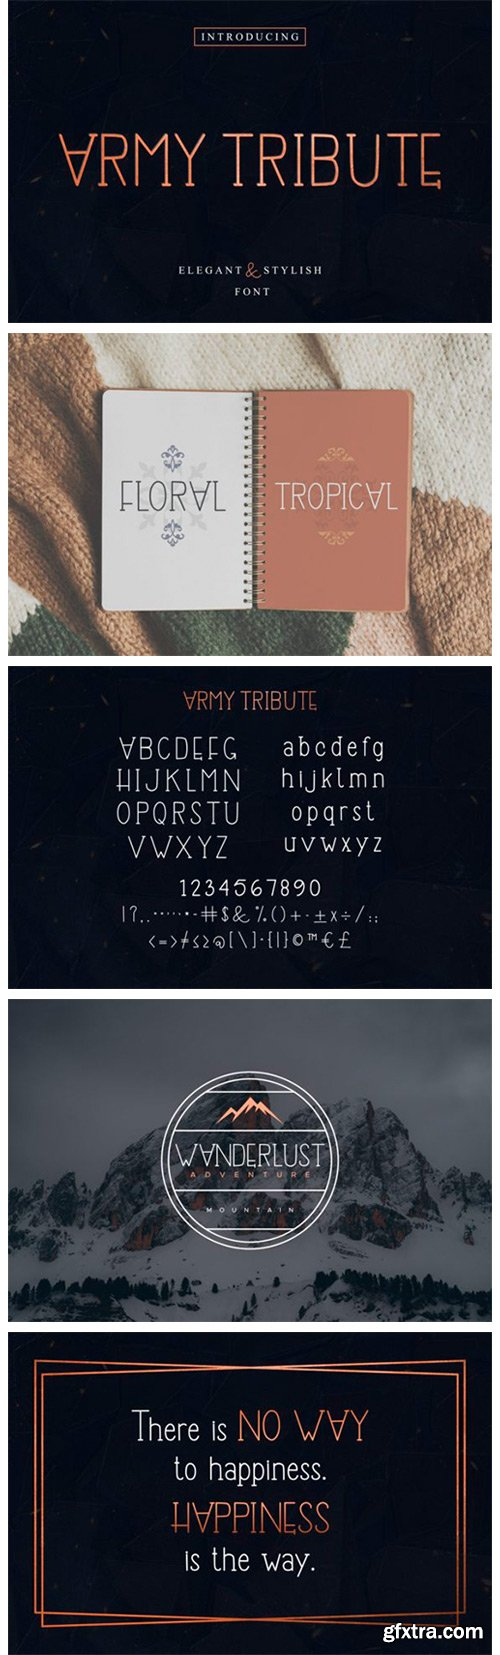 Army Tribute Font